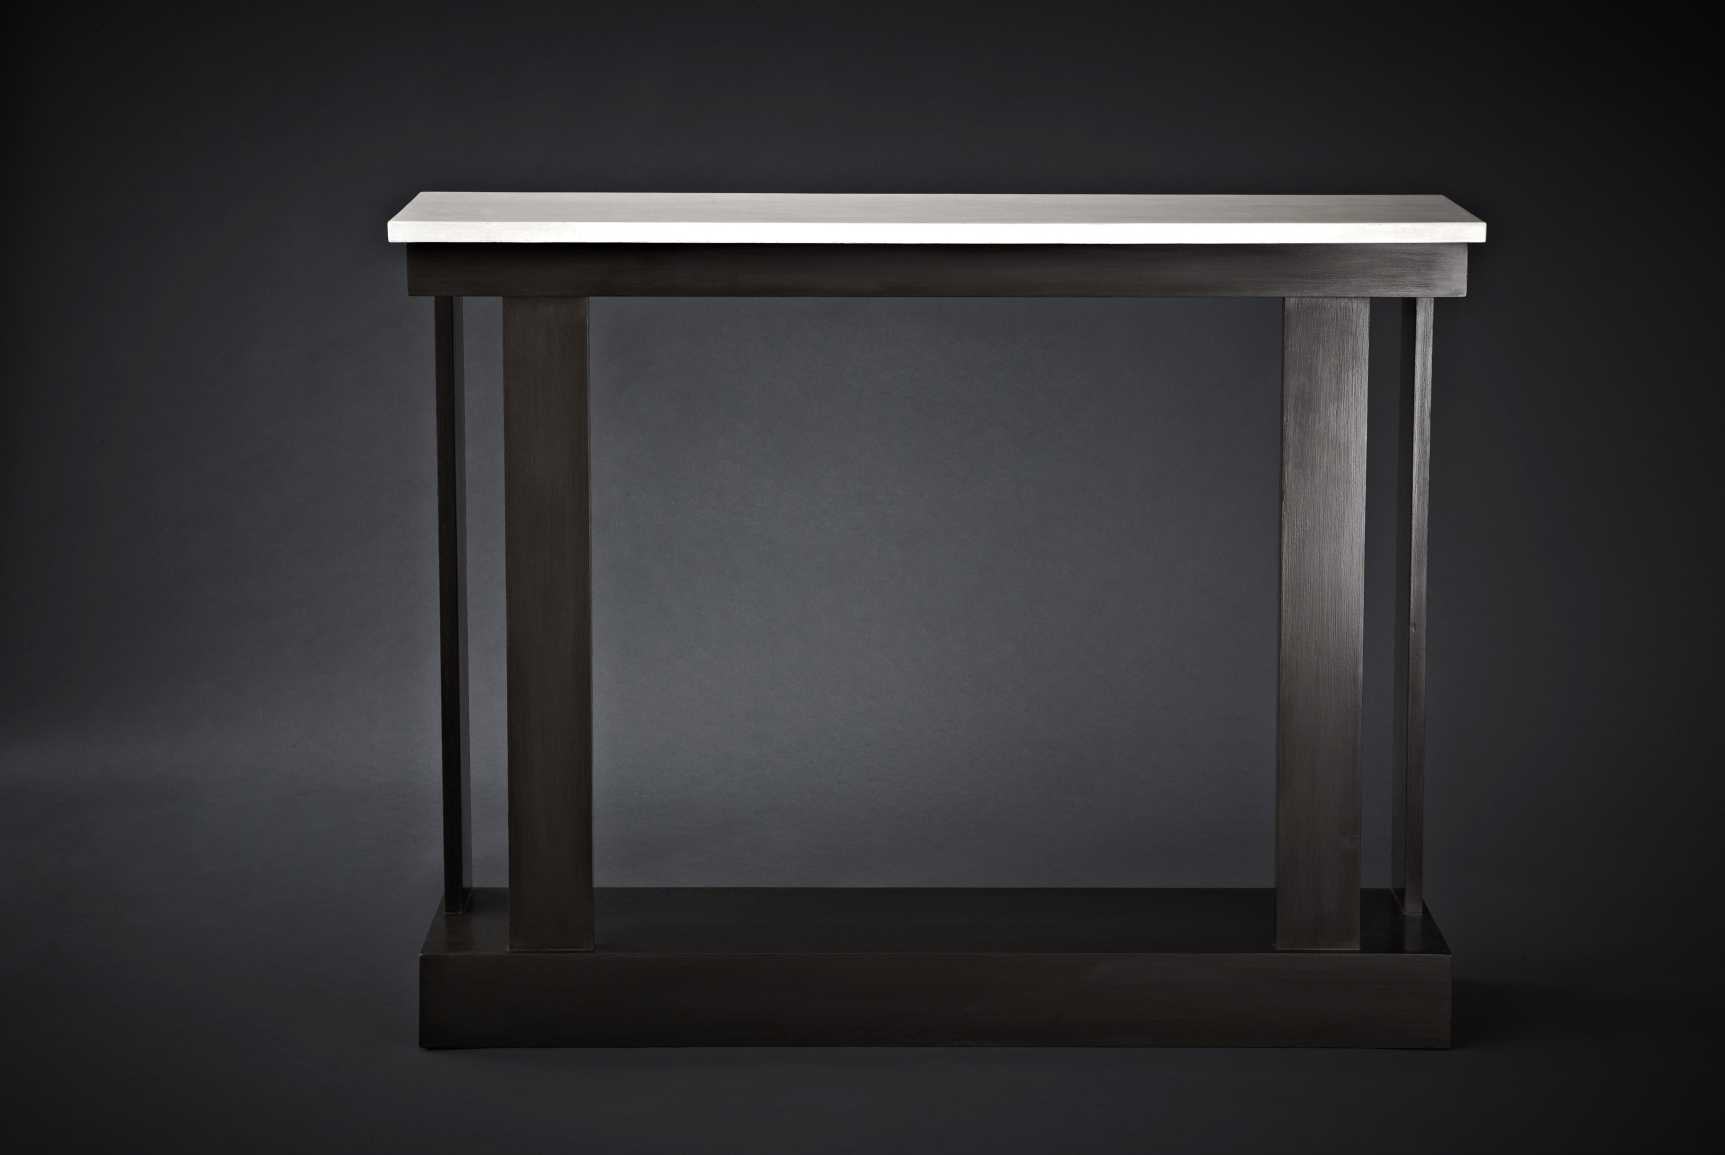 Art Deco inspired console table finished in dark bronze with a faux cracked vellum top